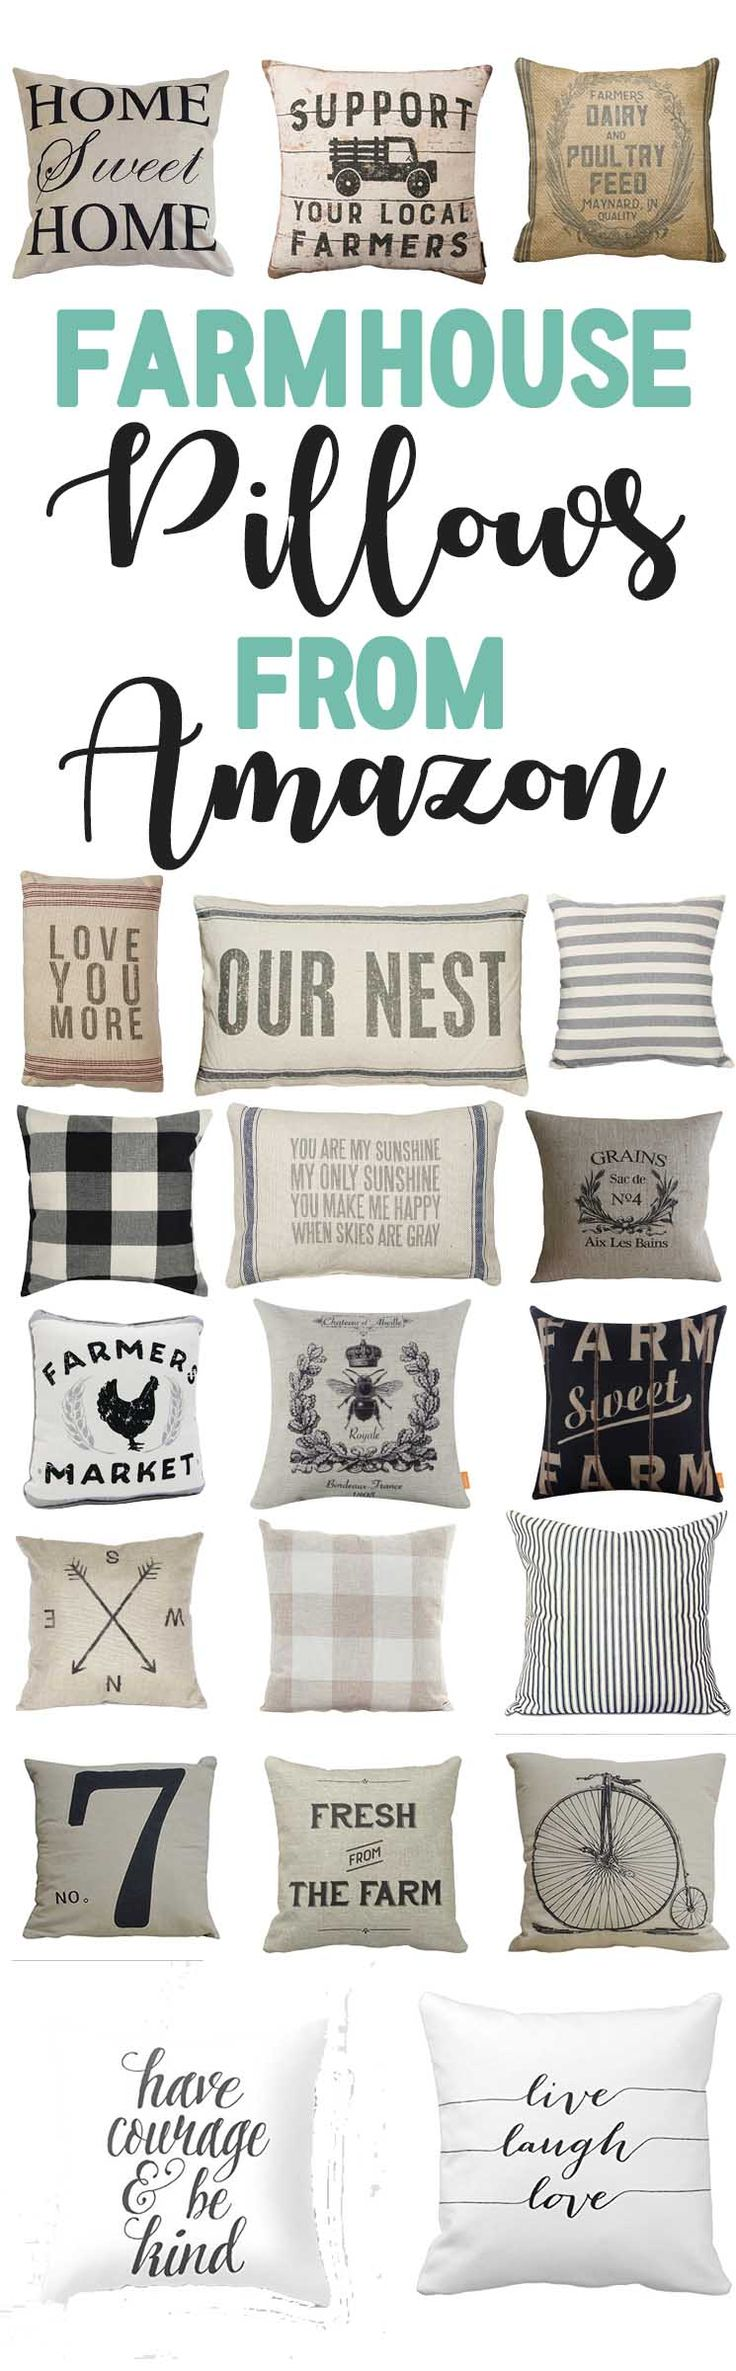 Farmhouse Pillows From Amazon-Affordable Farmhouse style decor-www.themountainviewcottage.net.jpg